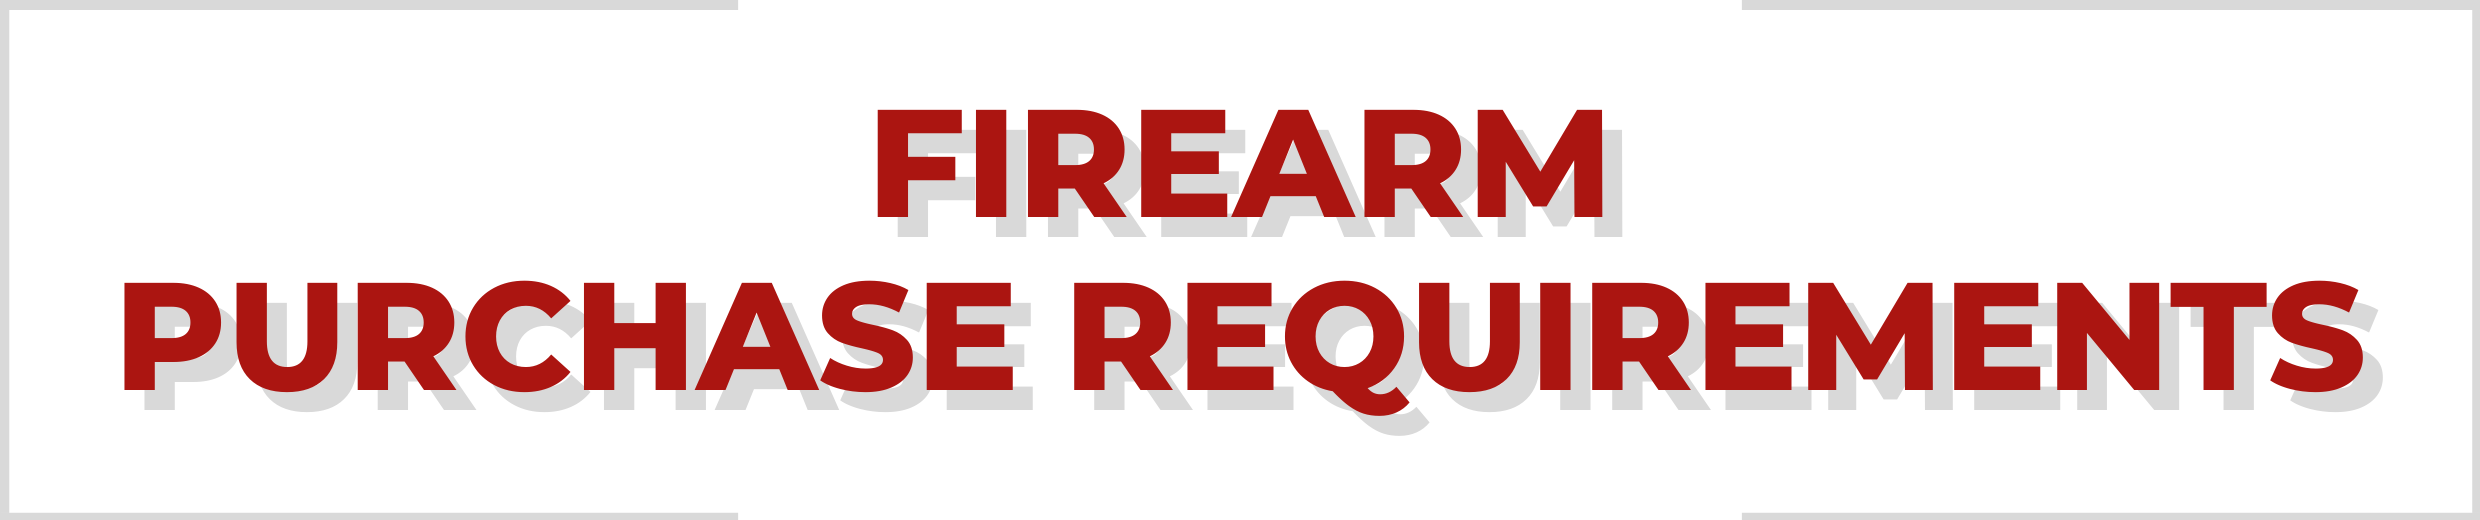 Firearm Purchase Requirements